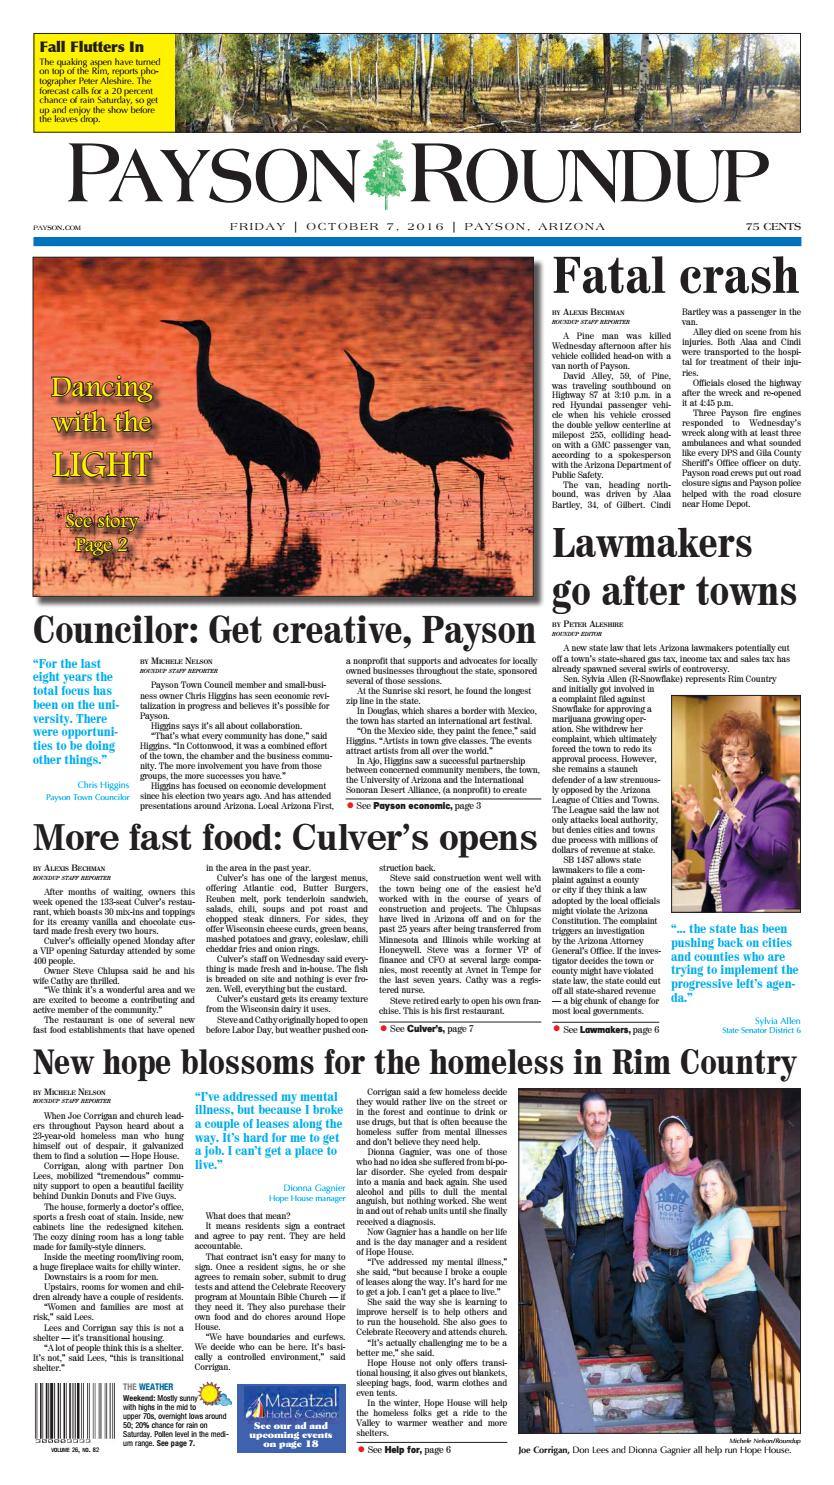 Payson Roundup 100716 by Payson Roundup - issuu